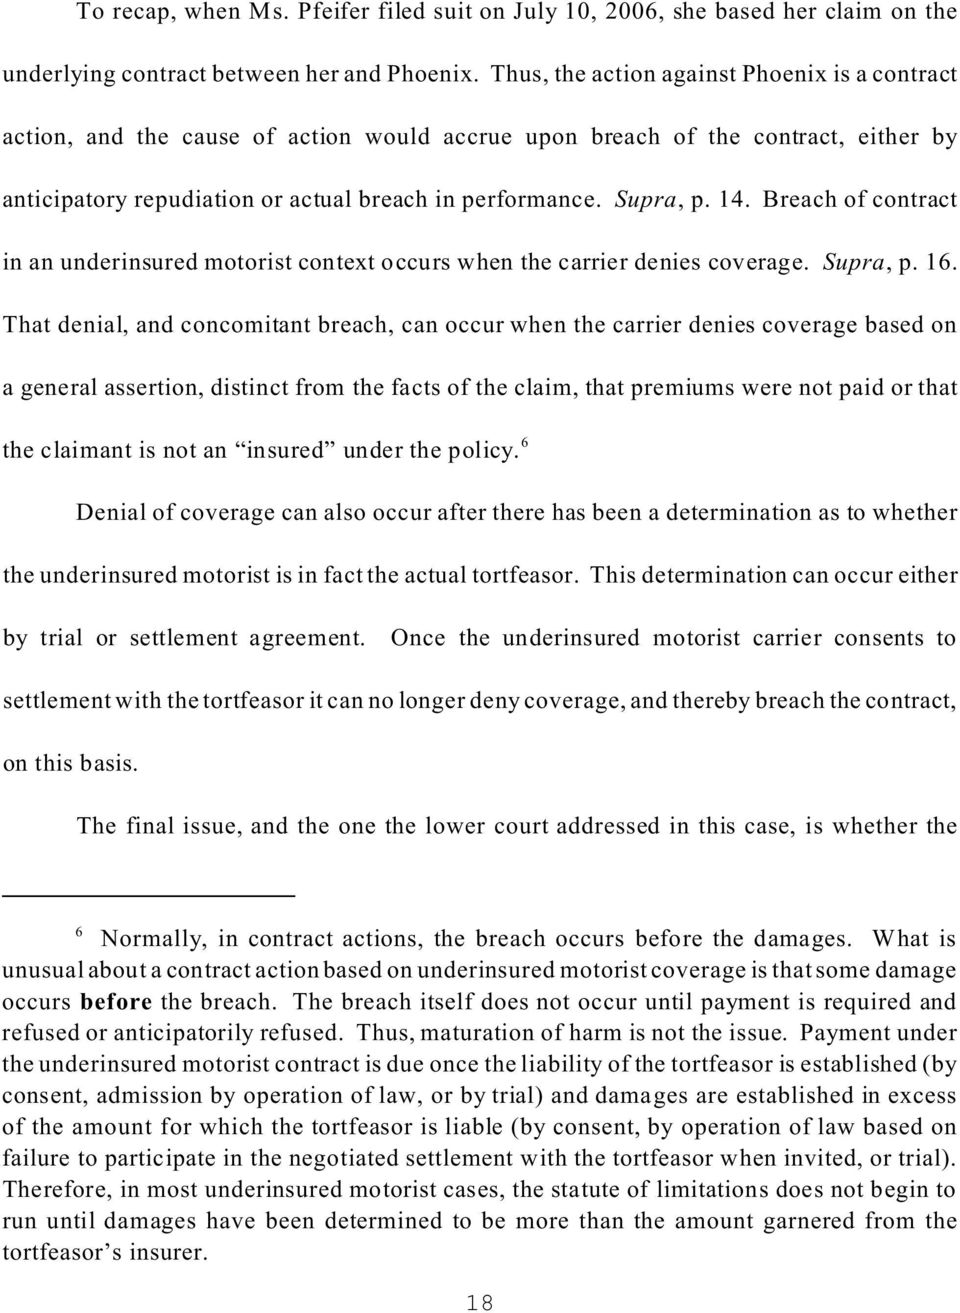 14. Breach of contract in an underinsured motorist context occurs when the carrier denies coverage. Supra, p. 16.